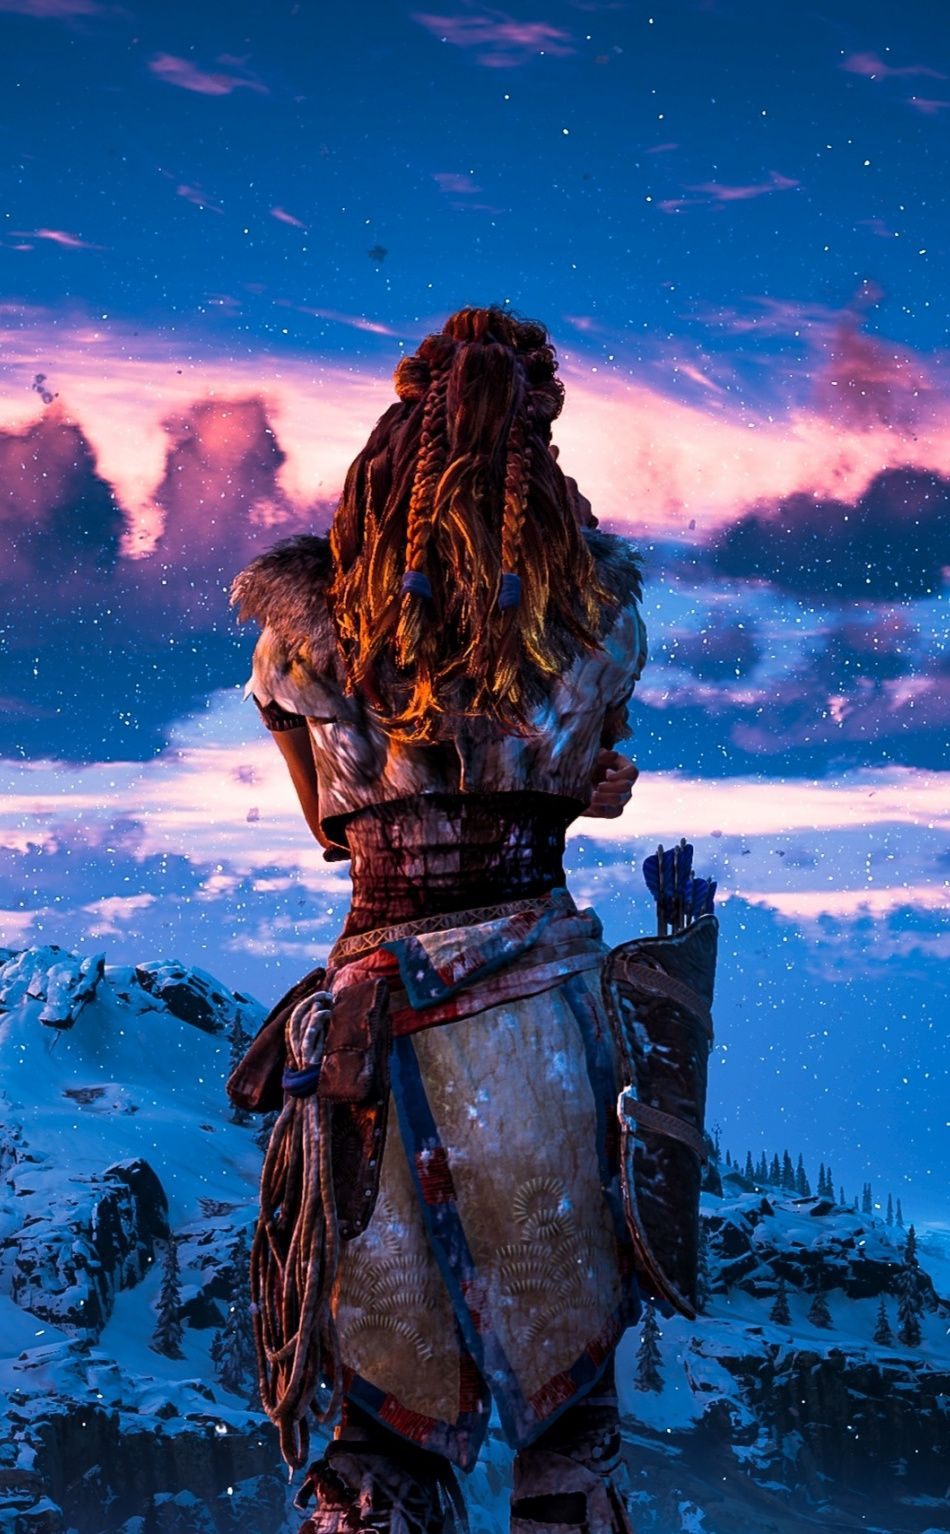 Horizon Zero Dawn Wallpaper Horizon Zero Dawn Horizon Zero Dawn Wallpaper Horizon Zero Dawn Aloy